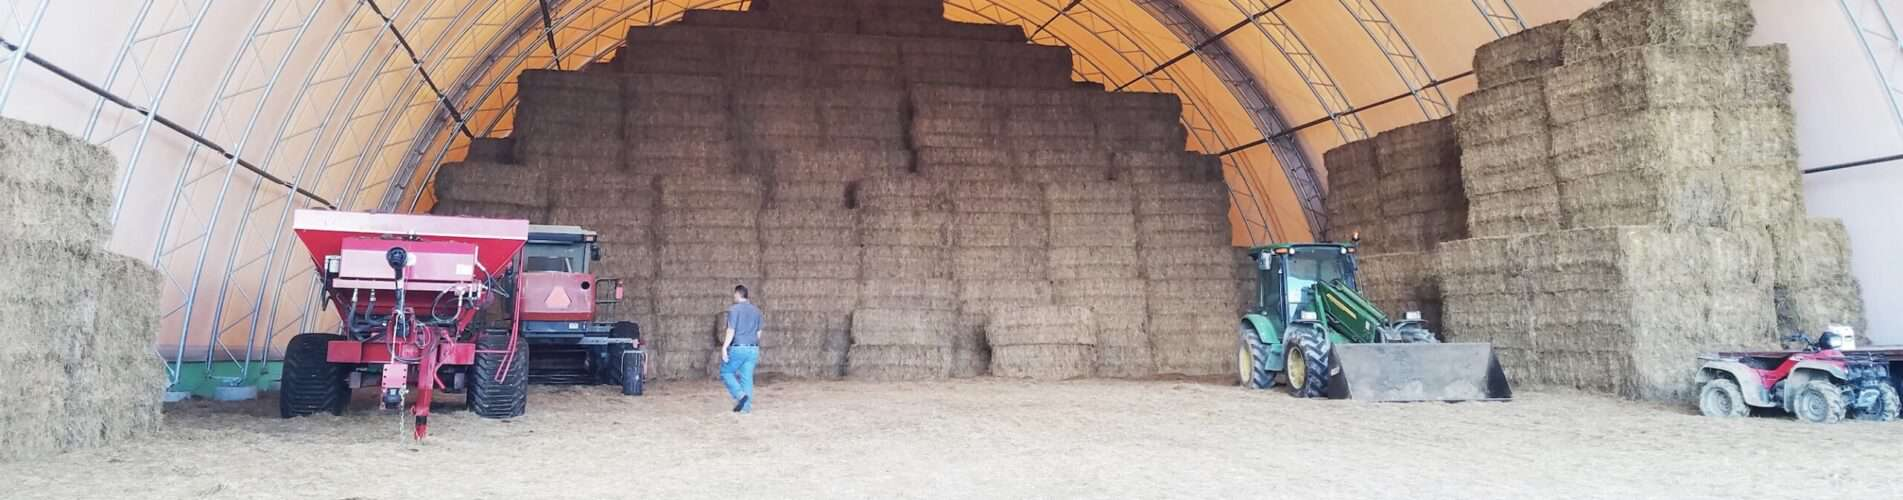 Hay and equipment storage in a Britespan Fabric Building